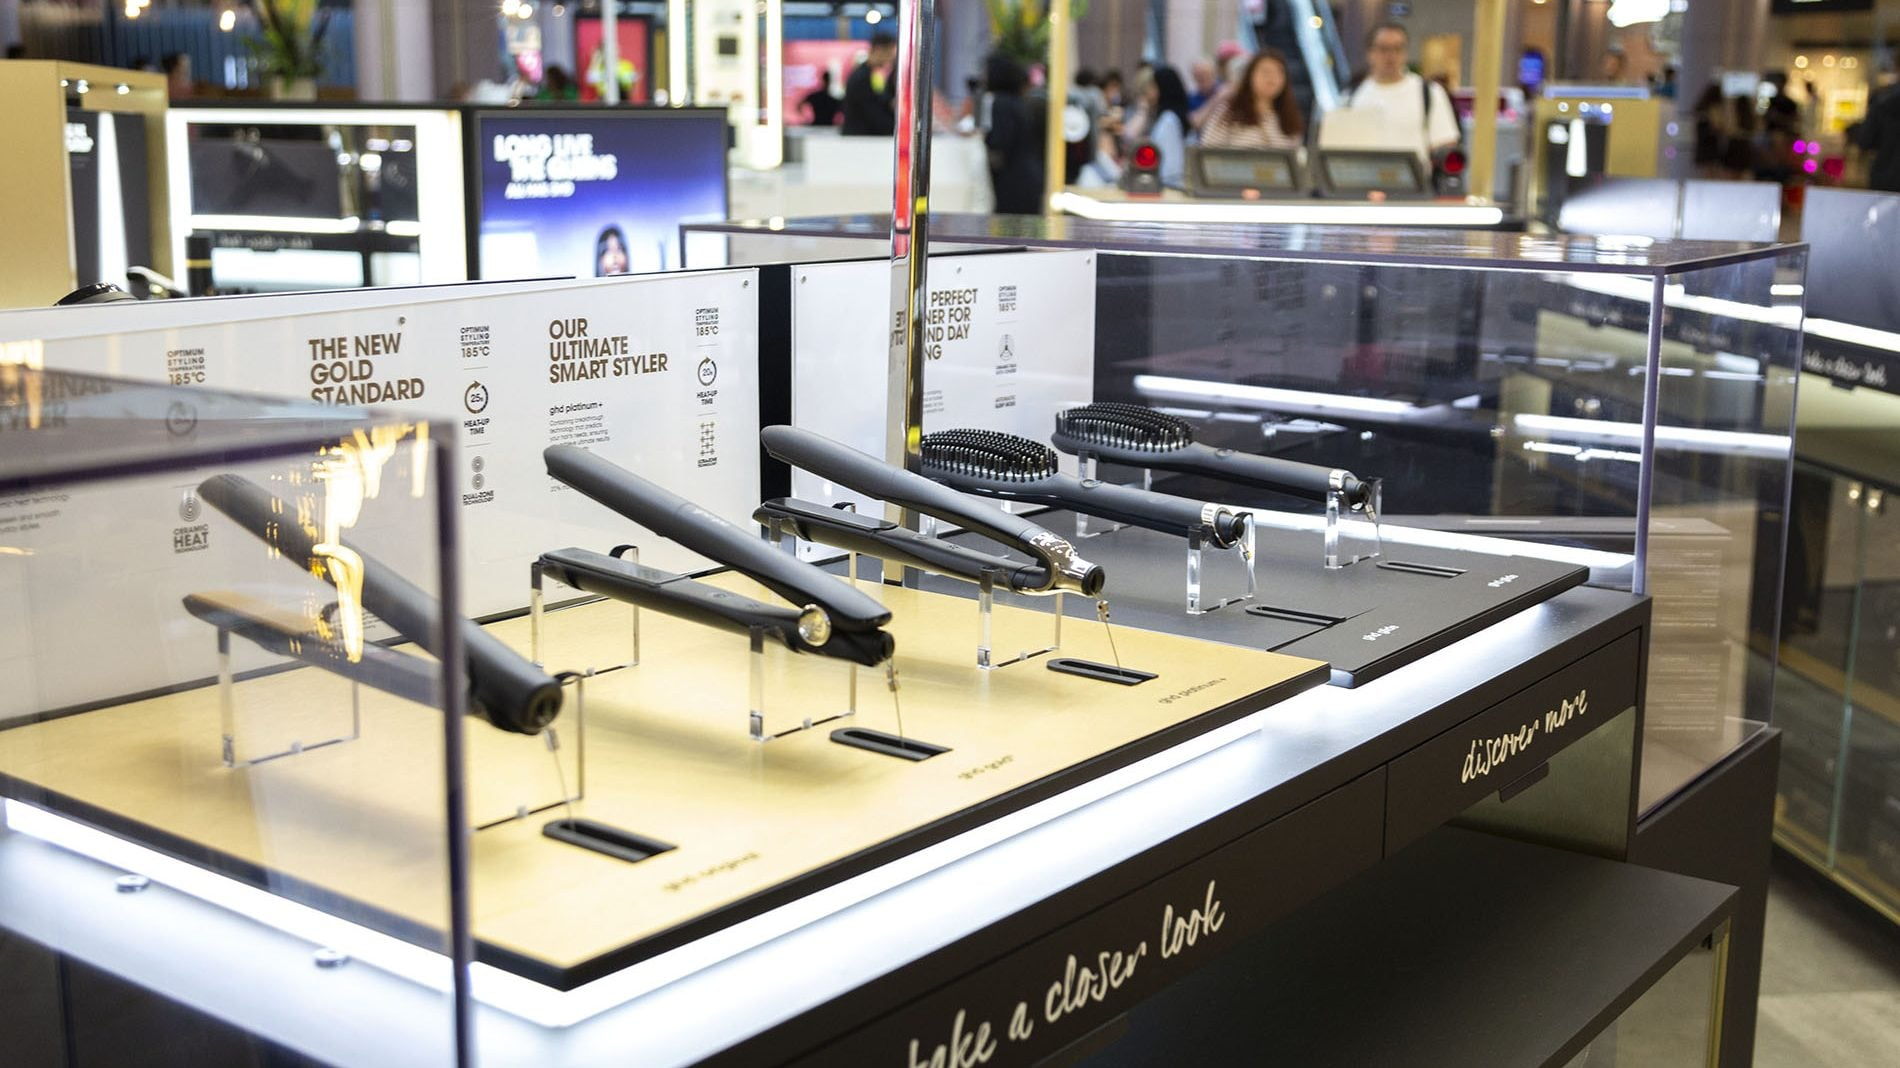 GHD kiosk at westfield london